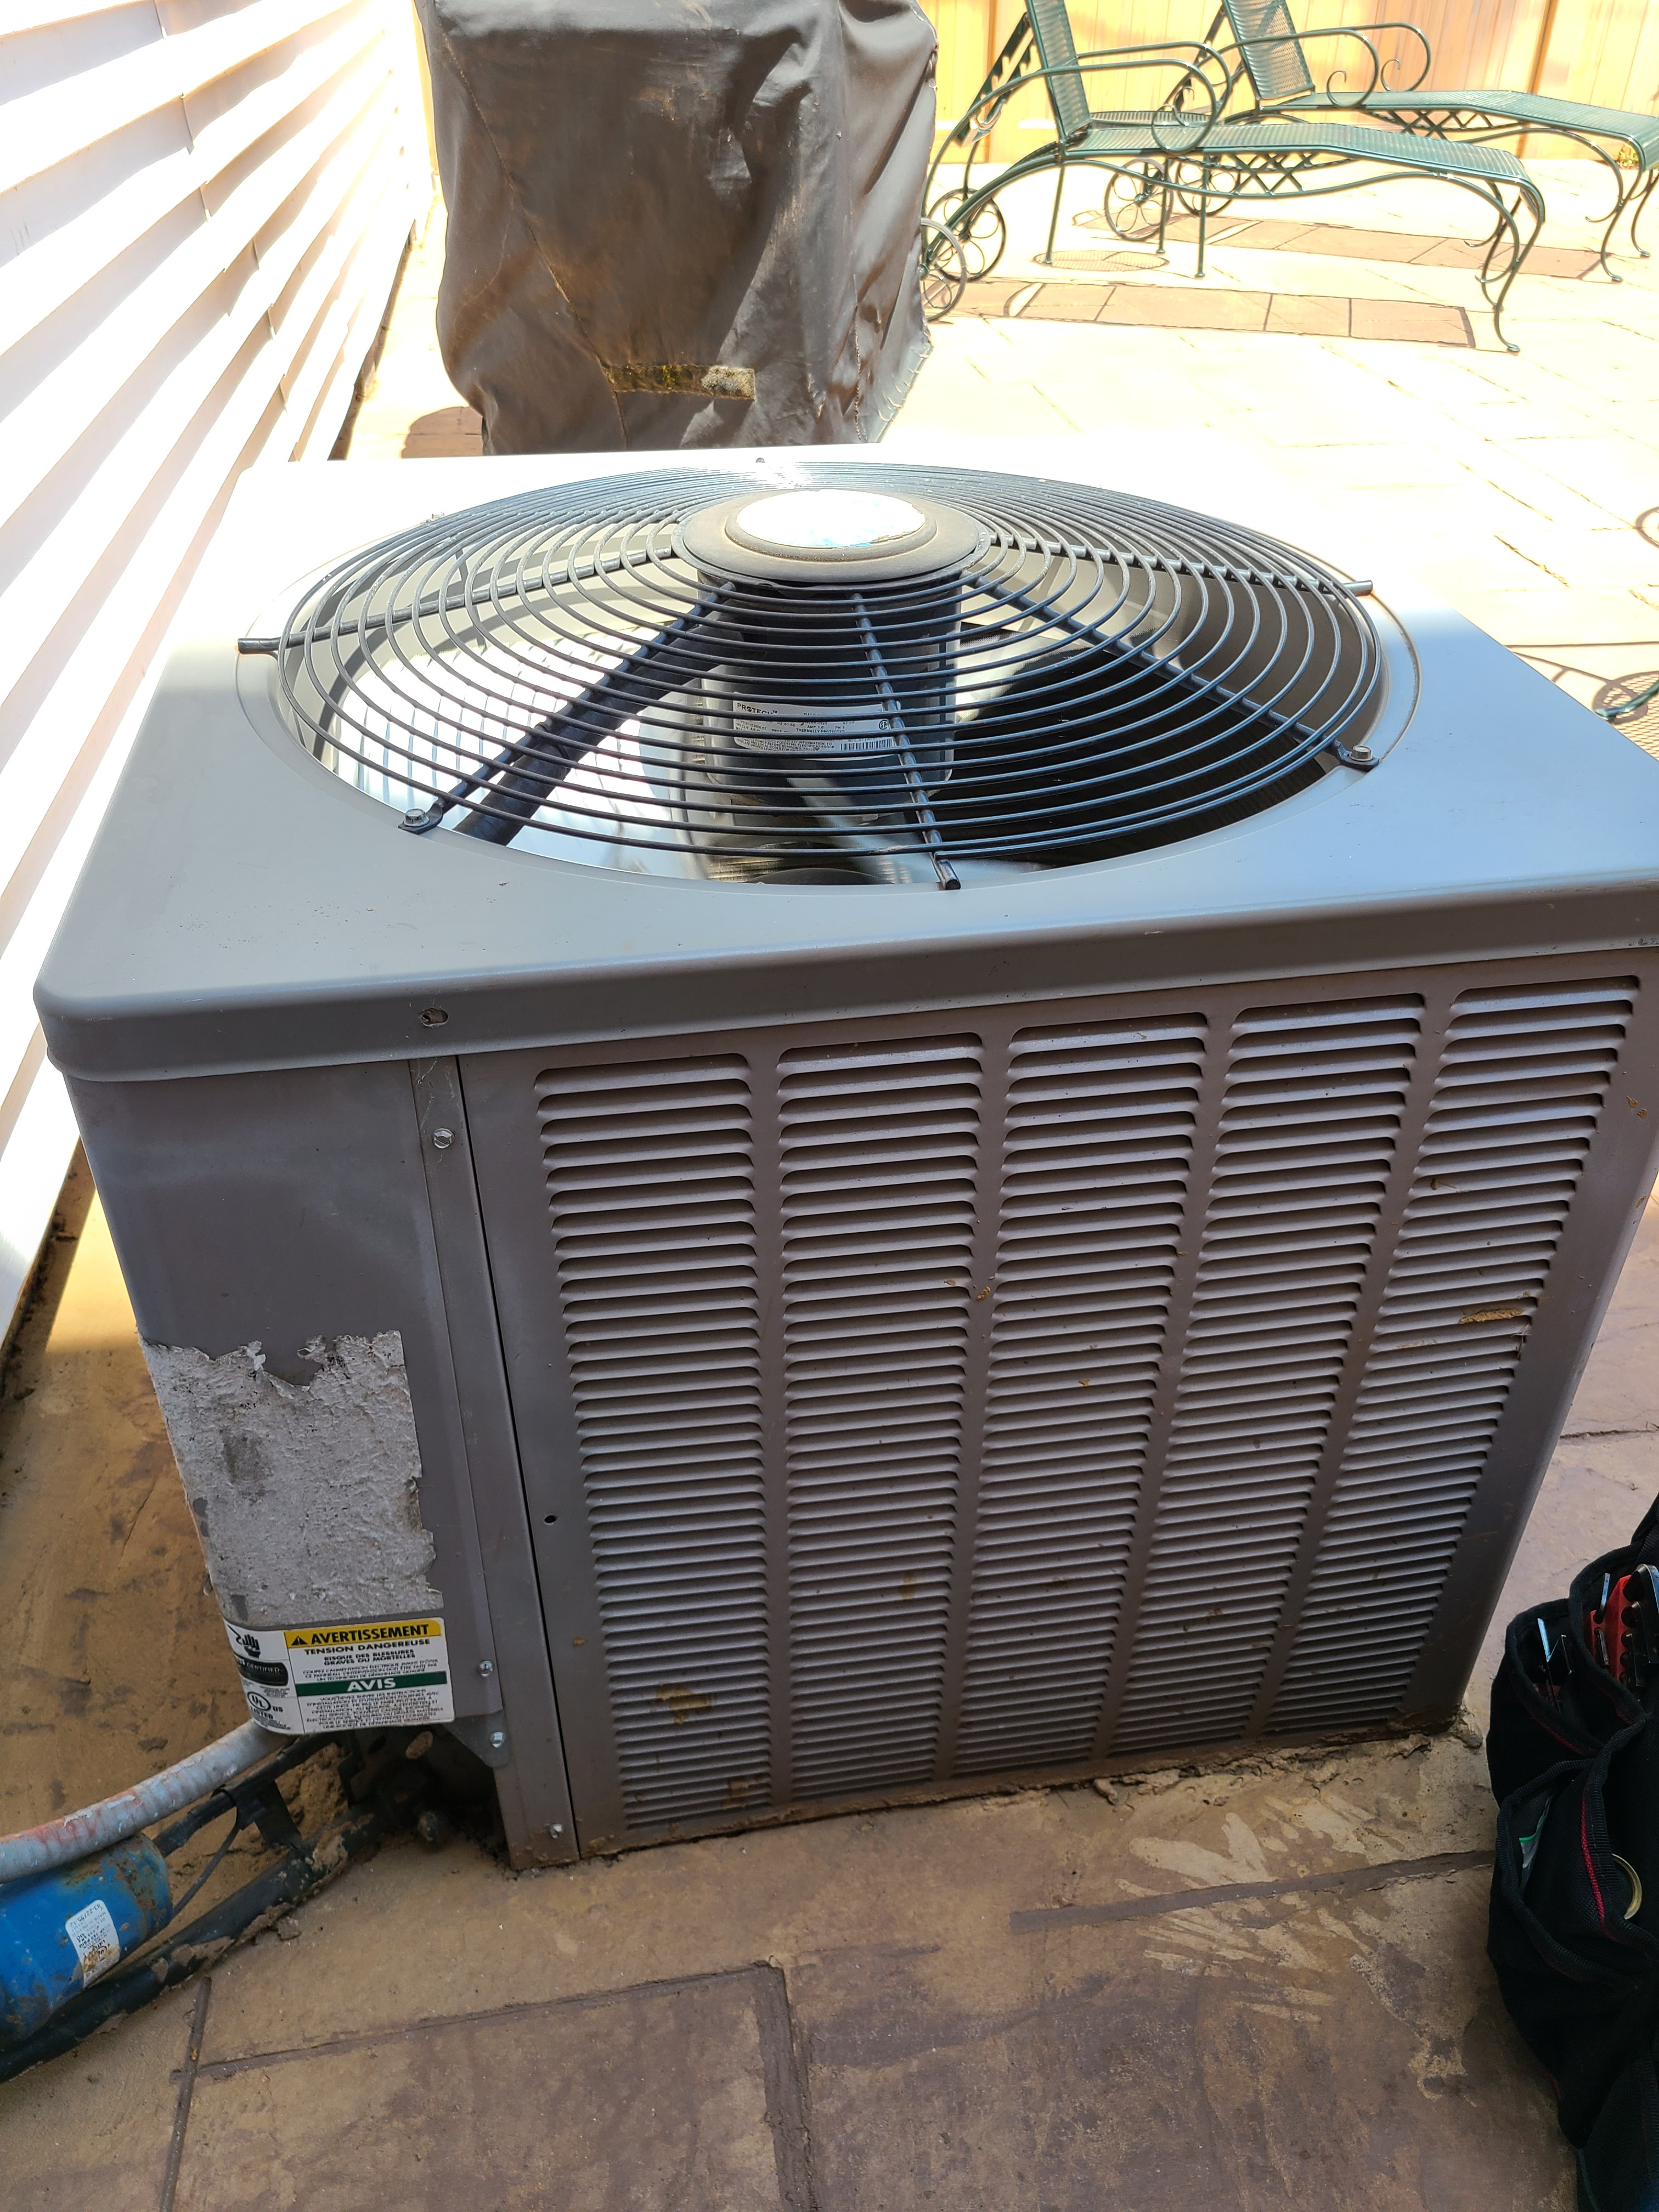 Rheem no cooling issue diagnosed and fixed. Cooling operation restored.